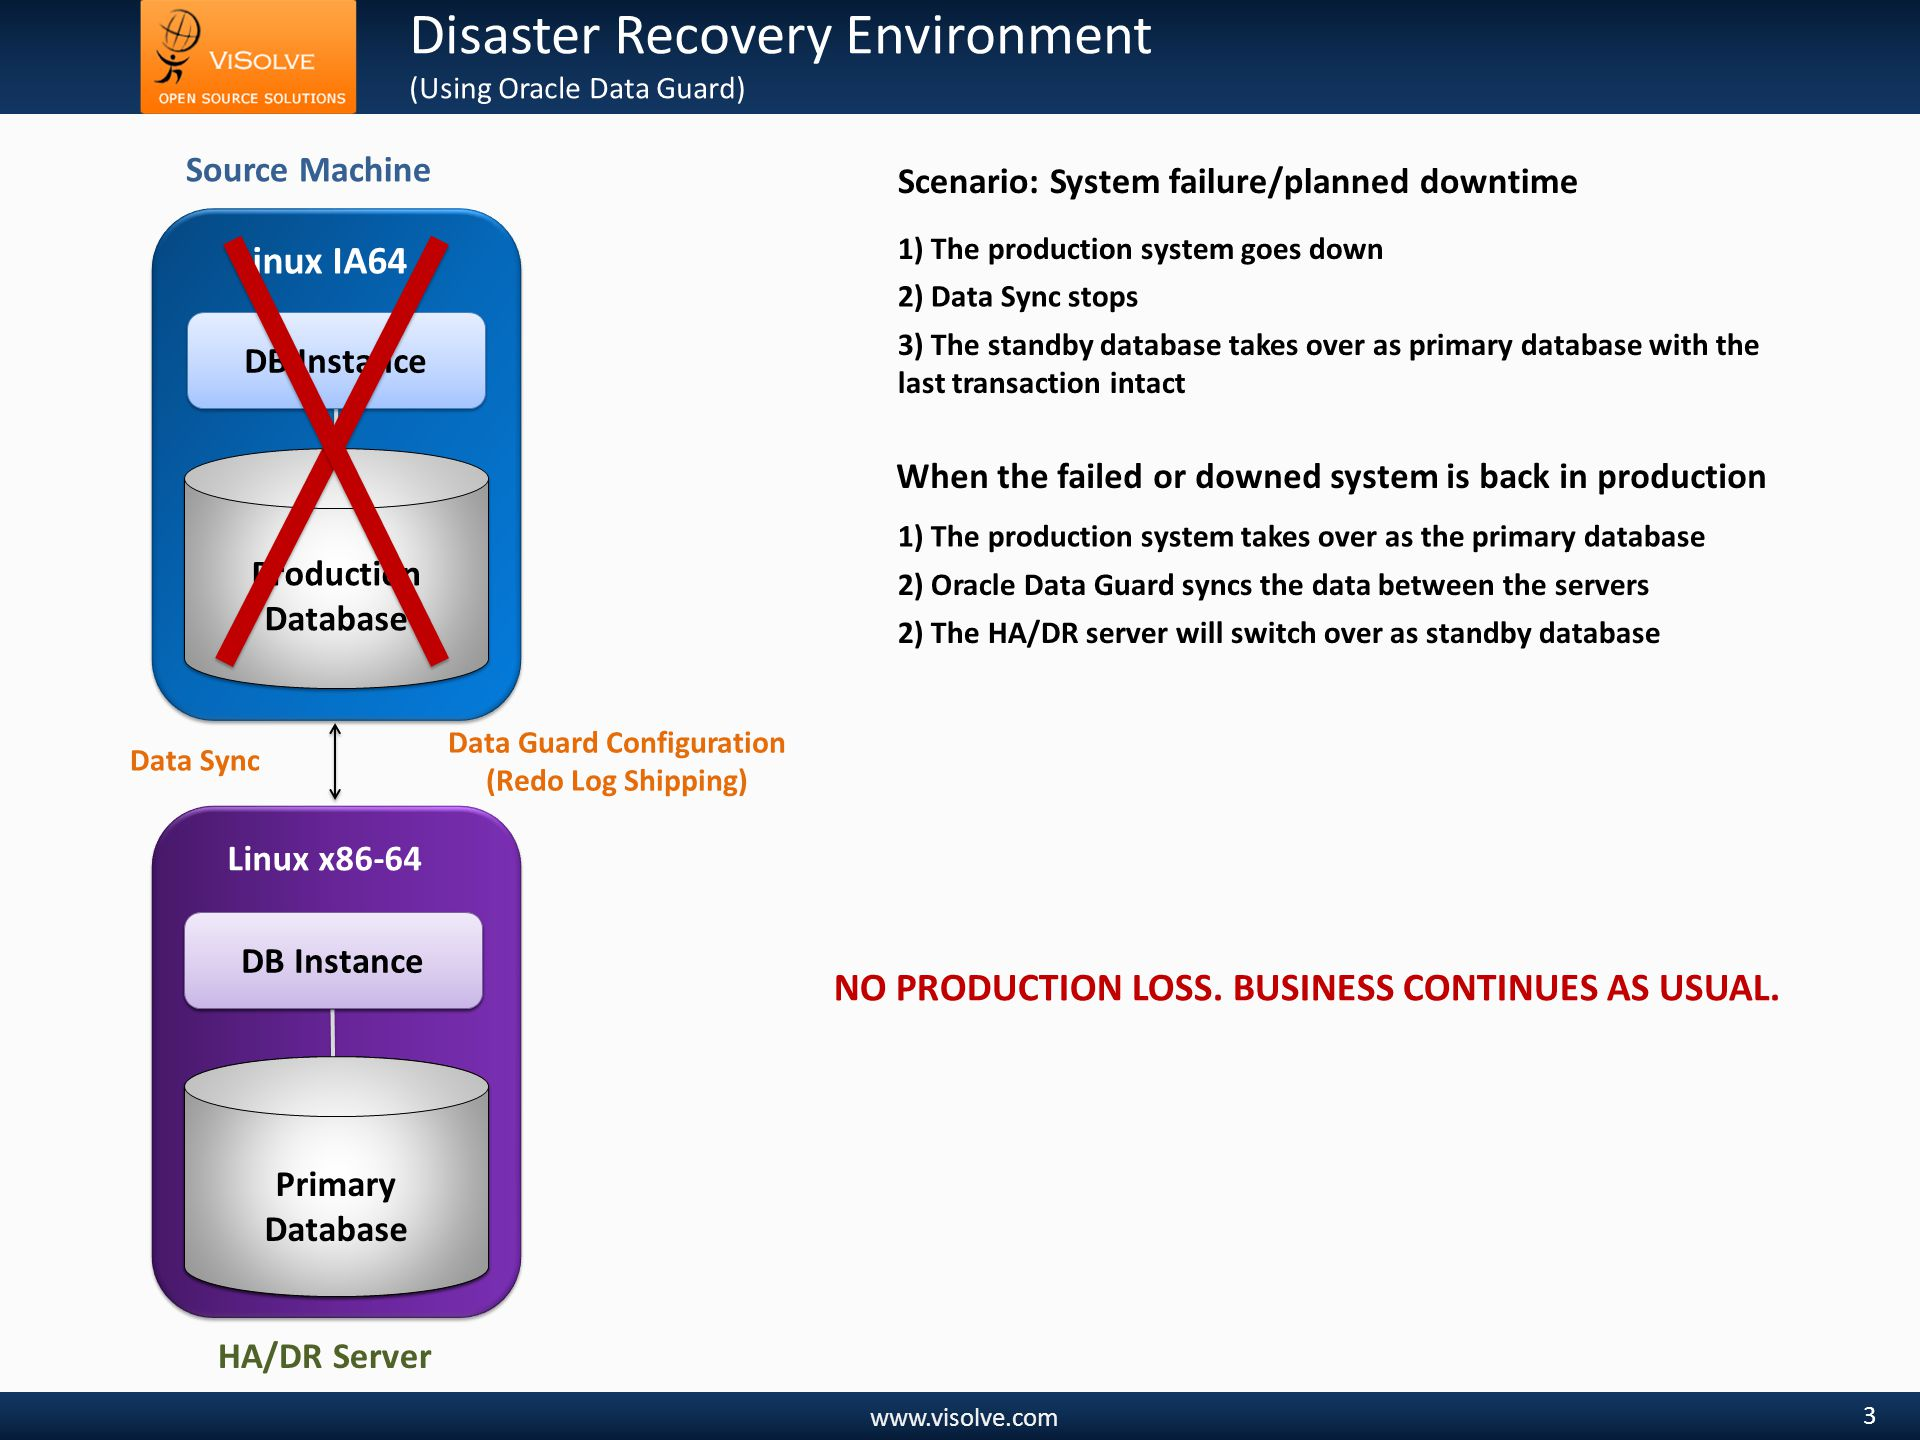 www.visolve.com Disaster Recovery Environment (Using Oracle Data Guard) 3 Source Machine Linux IA64 Production Database DB Instance Standby Database Linux x86-64 Standby Instance Data Guard Configuration (Redo Log Shipping) 1) The production system goes down 3) The standby database takes over as primary database with the last transaction intact 1) The production system takes over as the primary database 2) The HA/DR server will switch over as standby database Data Sync DB Instance Primary Database Scenario: System failure/planned downtime When the failed or downed system is back in production 2) Oracle Data Guard syncs the data between the servers HA/DR Server NO PRODUCTION LOSS.